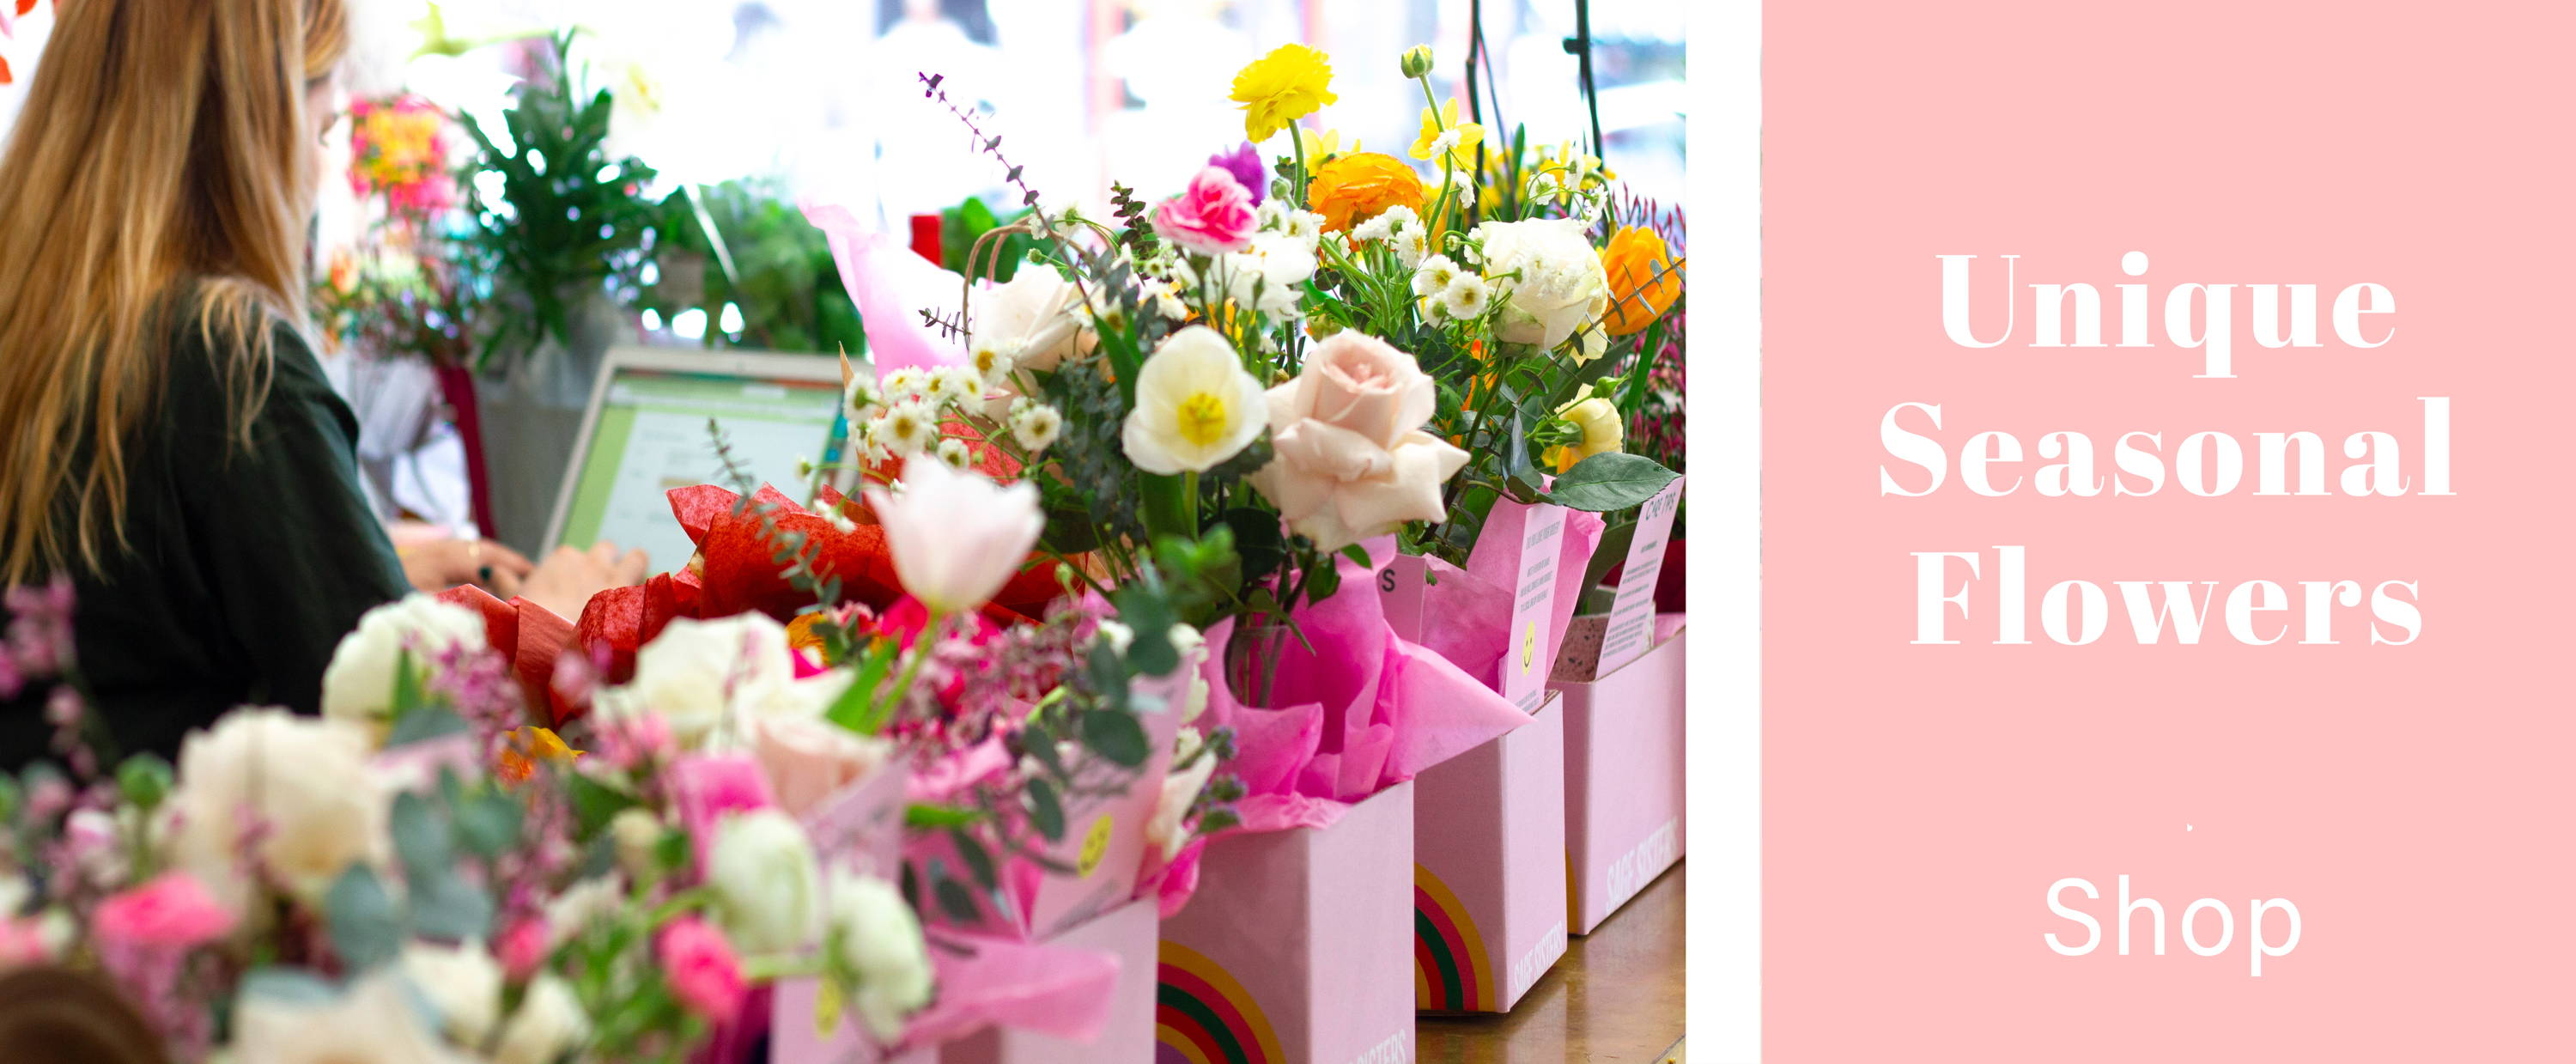 sage-sisters-arrangements-and-bouquets-ready-for-local-delivery-in-san-diego